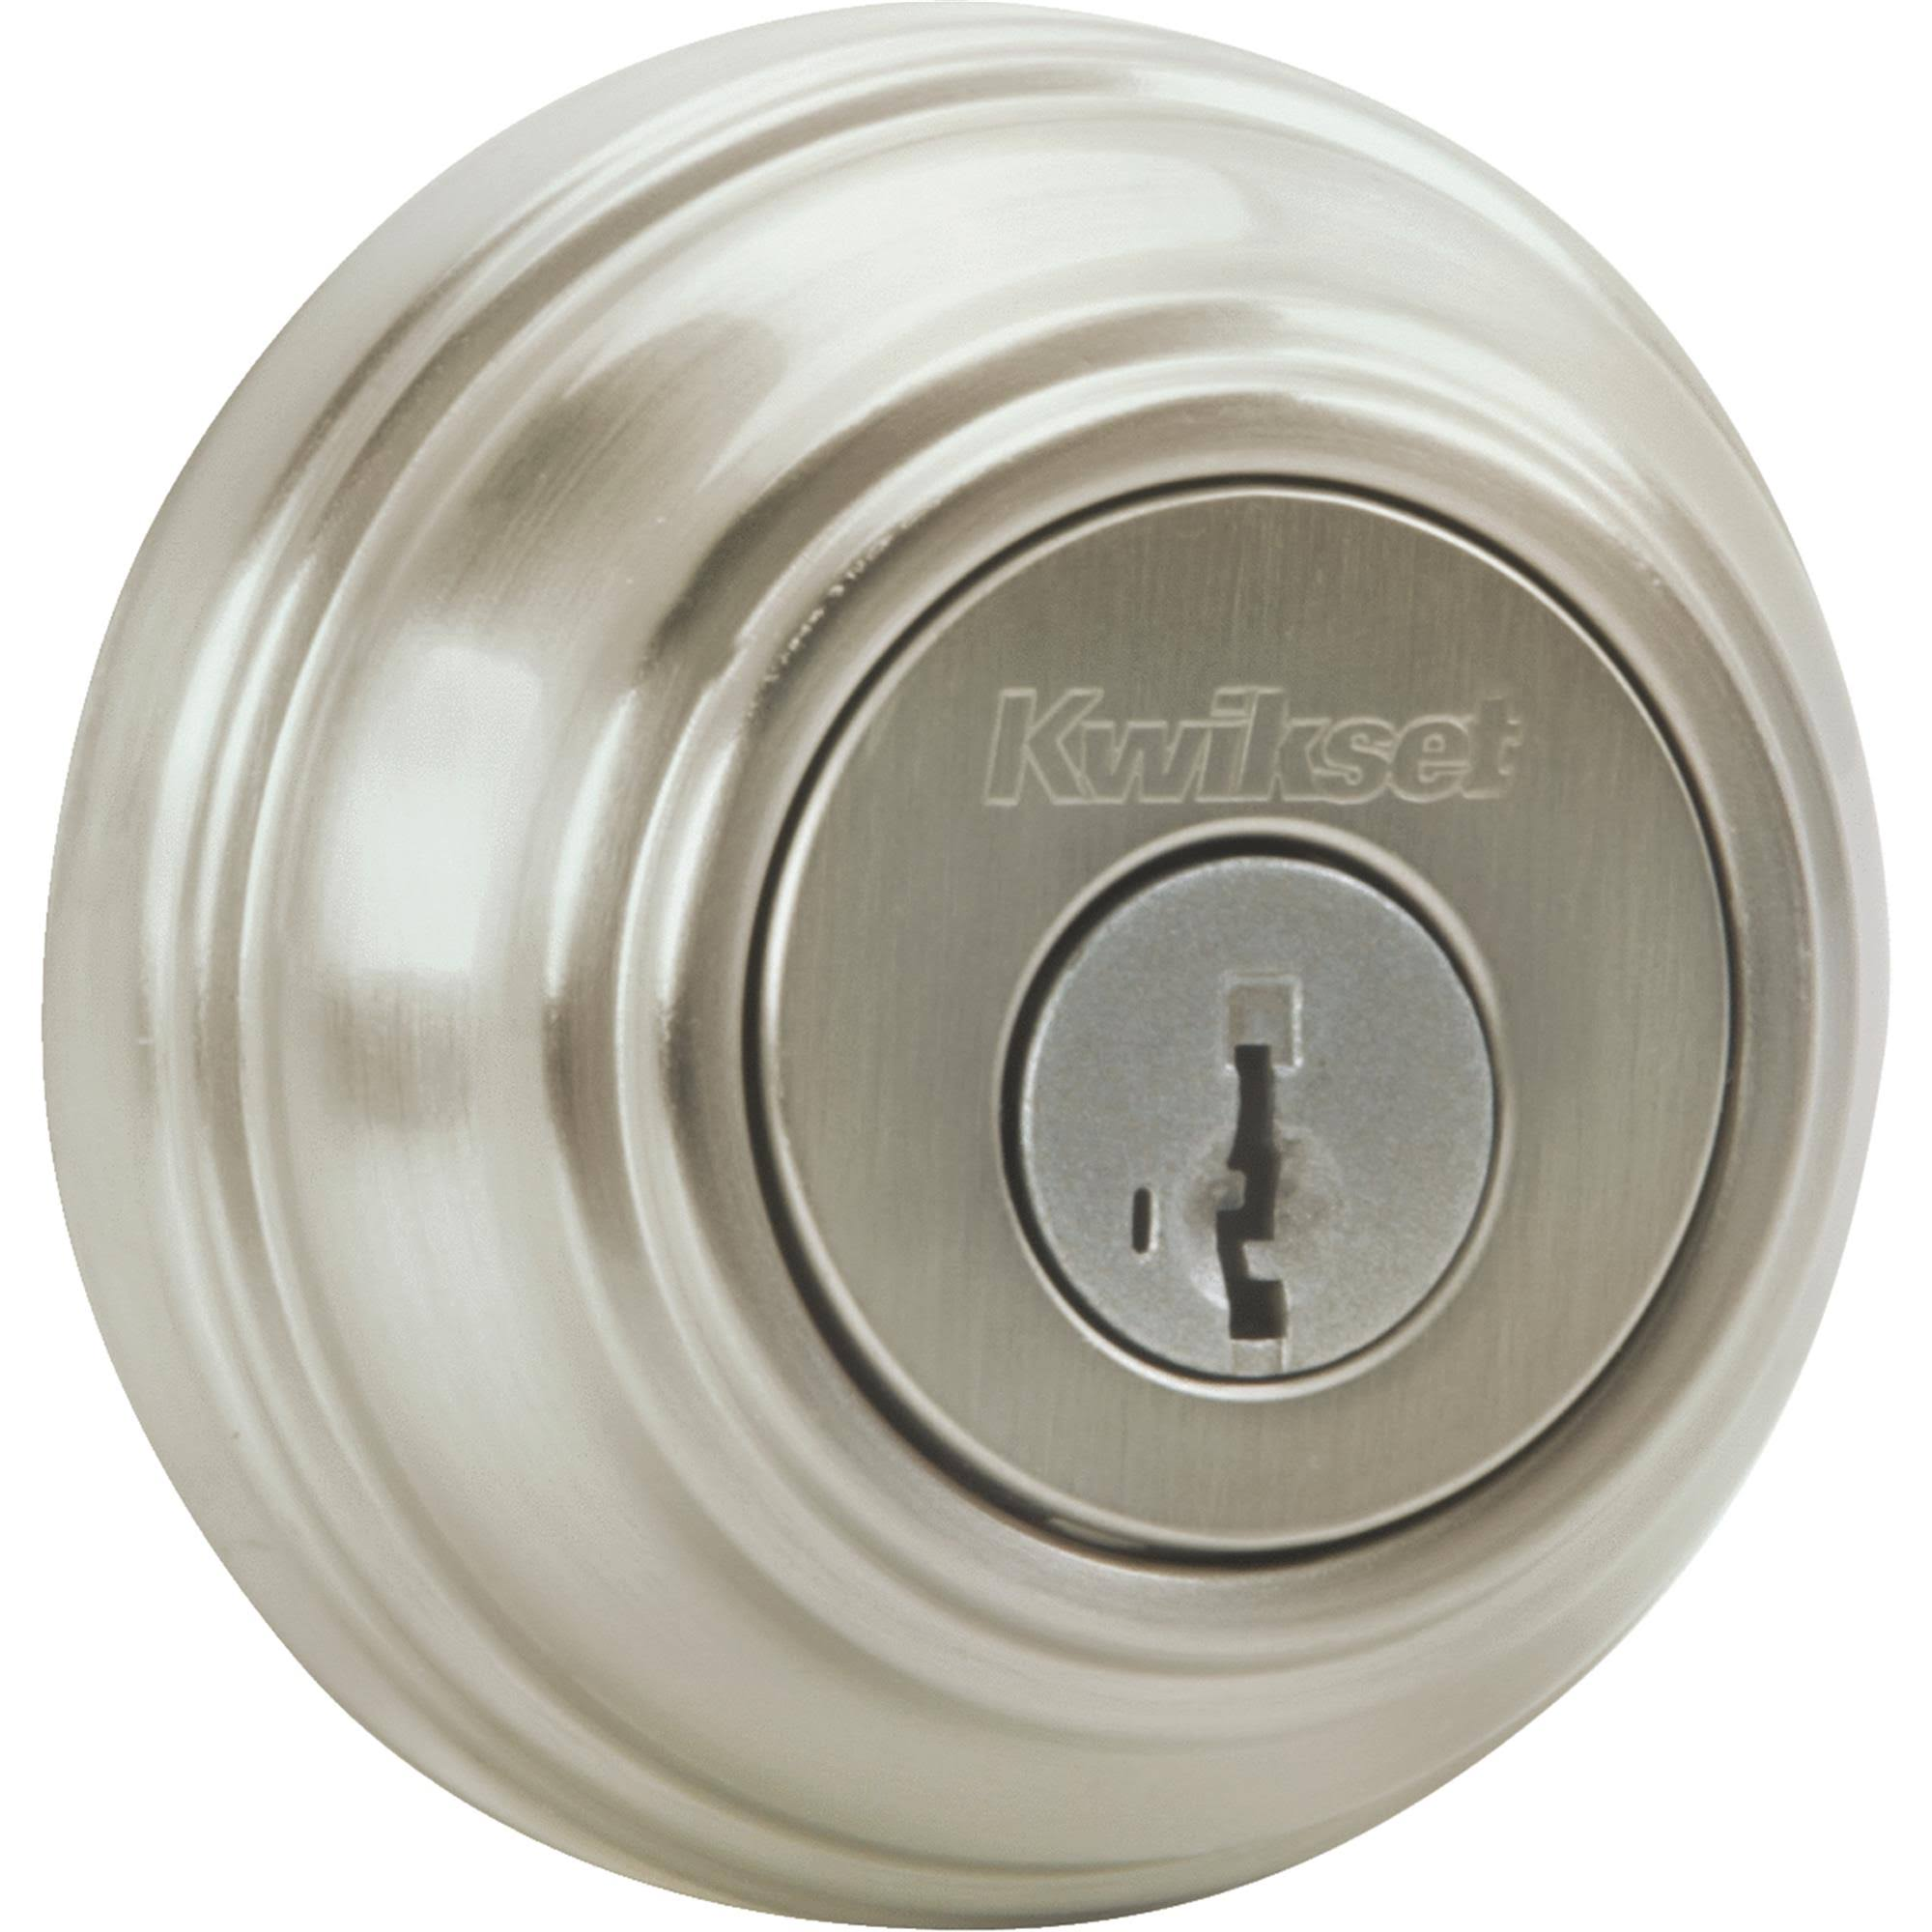 Kwikset 980 Series Single Deadbolt - Satin Nickel